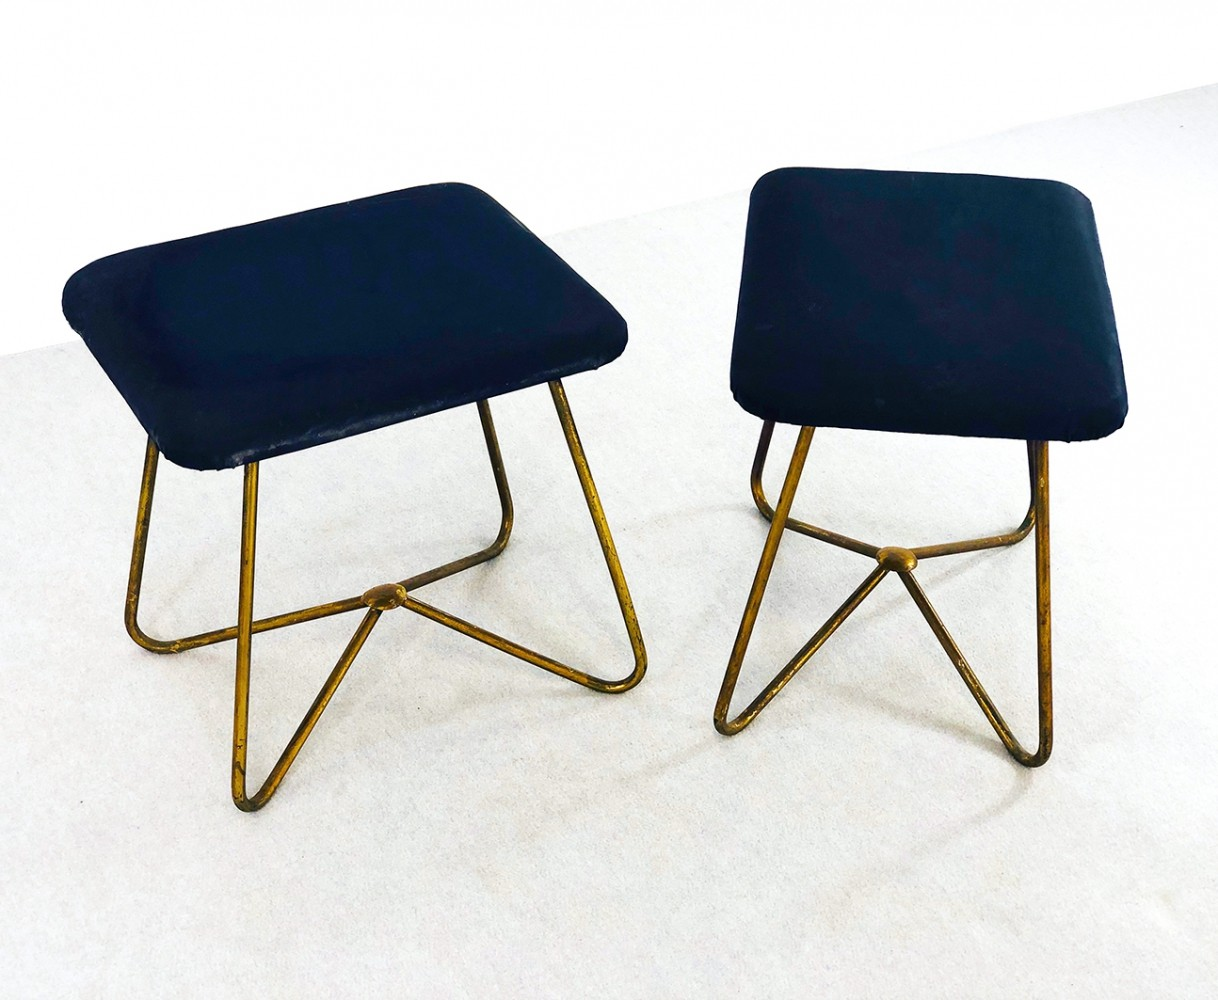 Pair of 50s stools in brass & blue colored leather